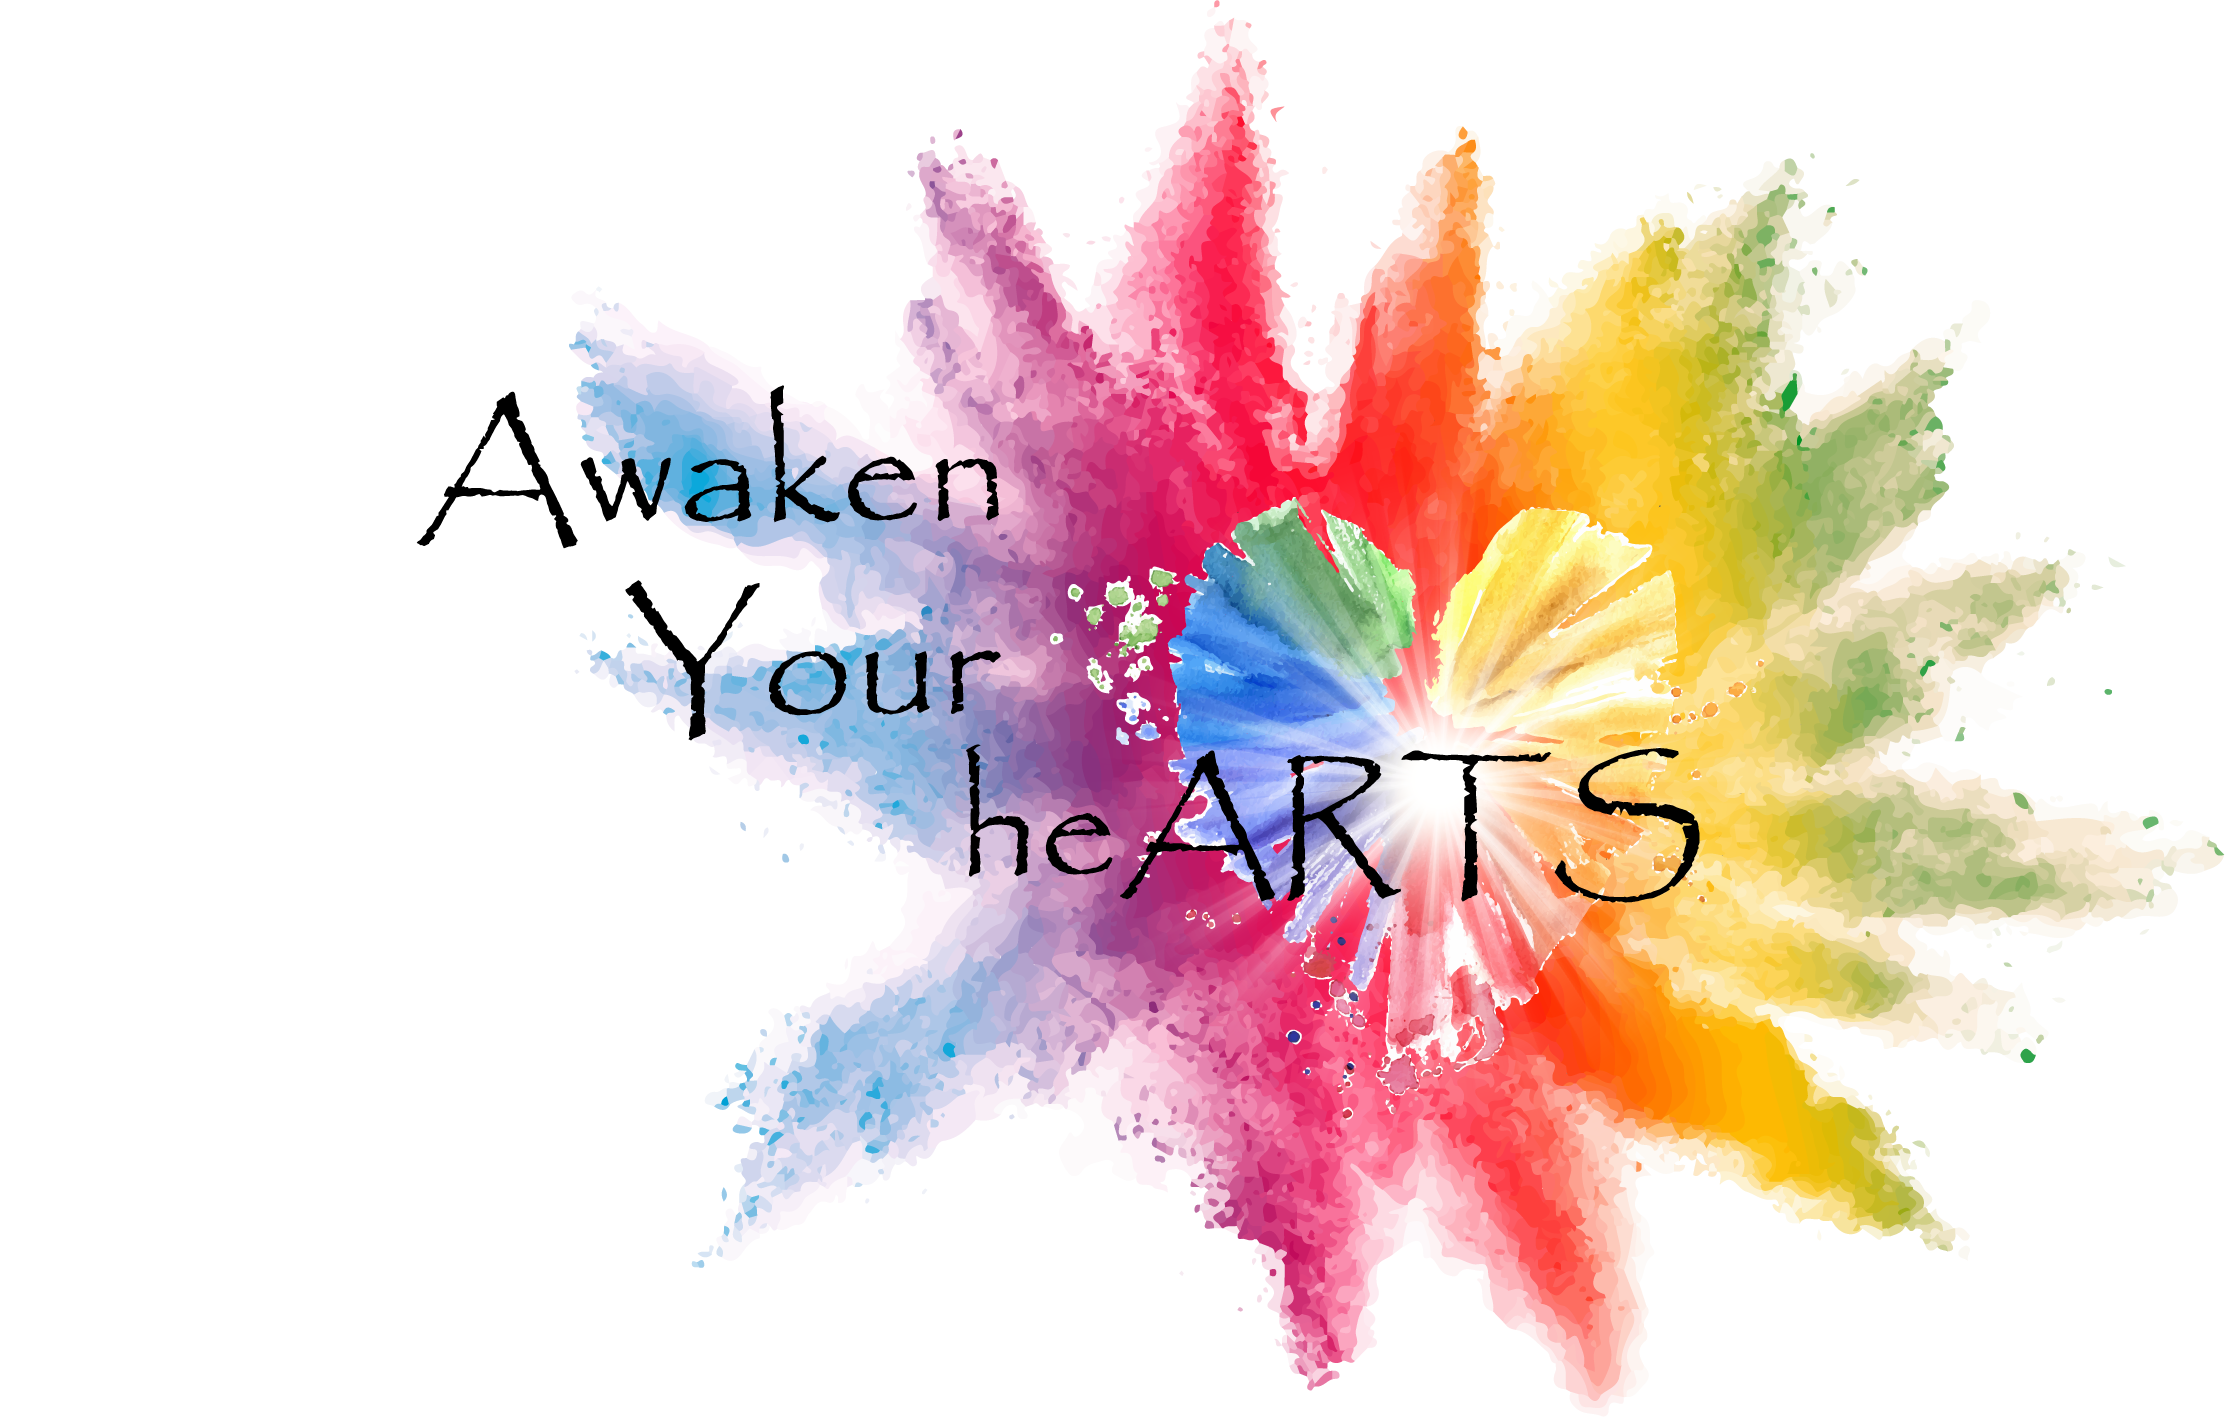 Awaken Your heARTS